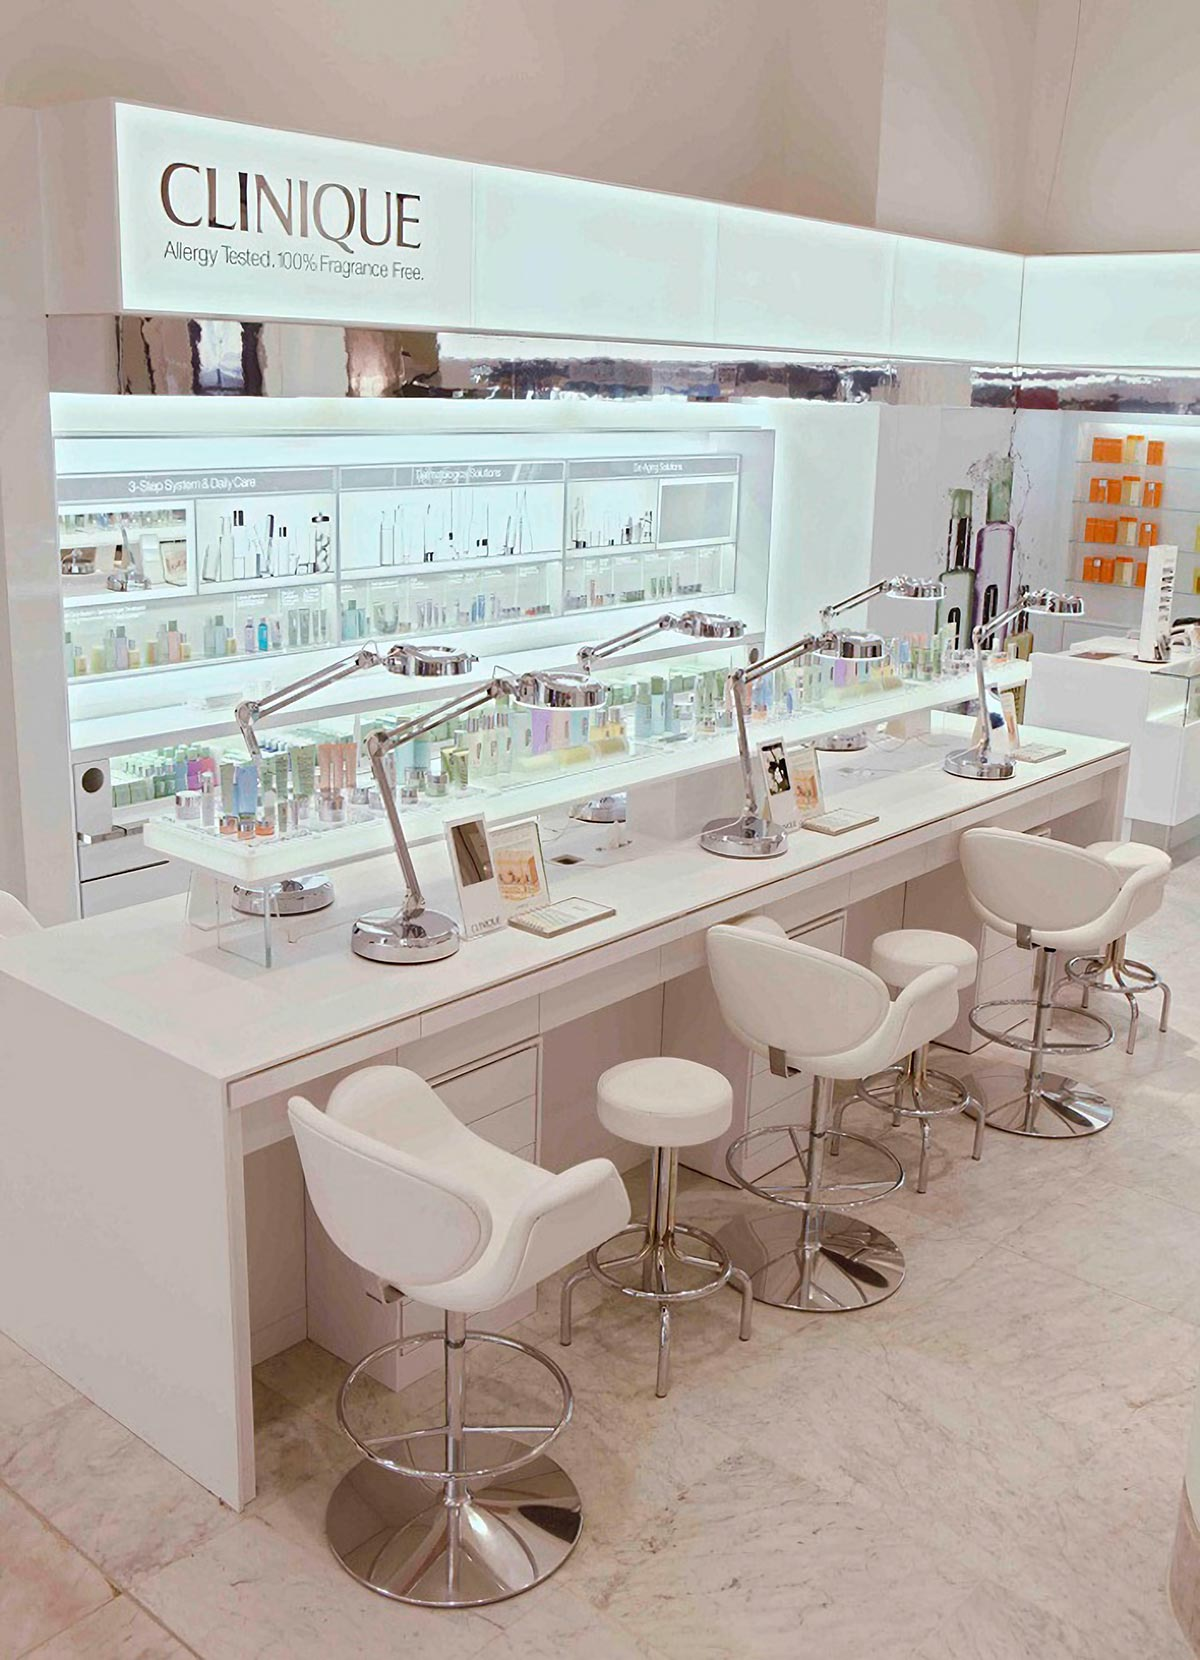 BEAUTY STORES! Clinique shop at Selfridges, London